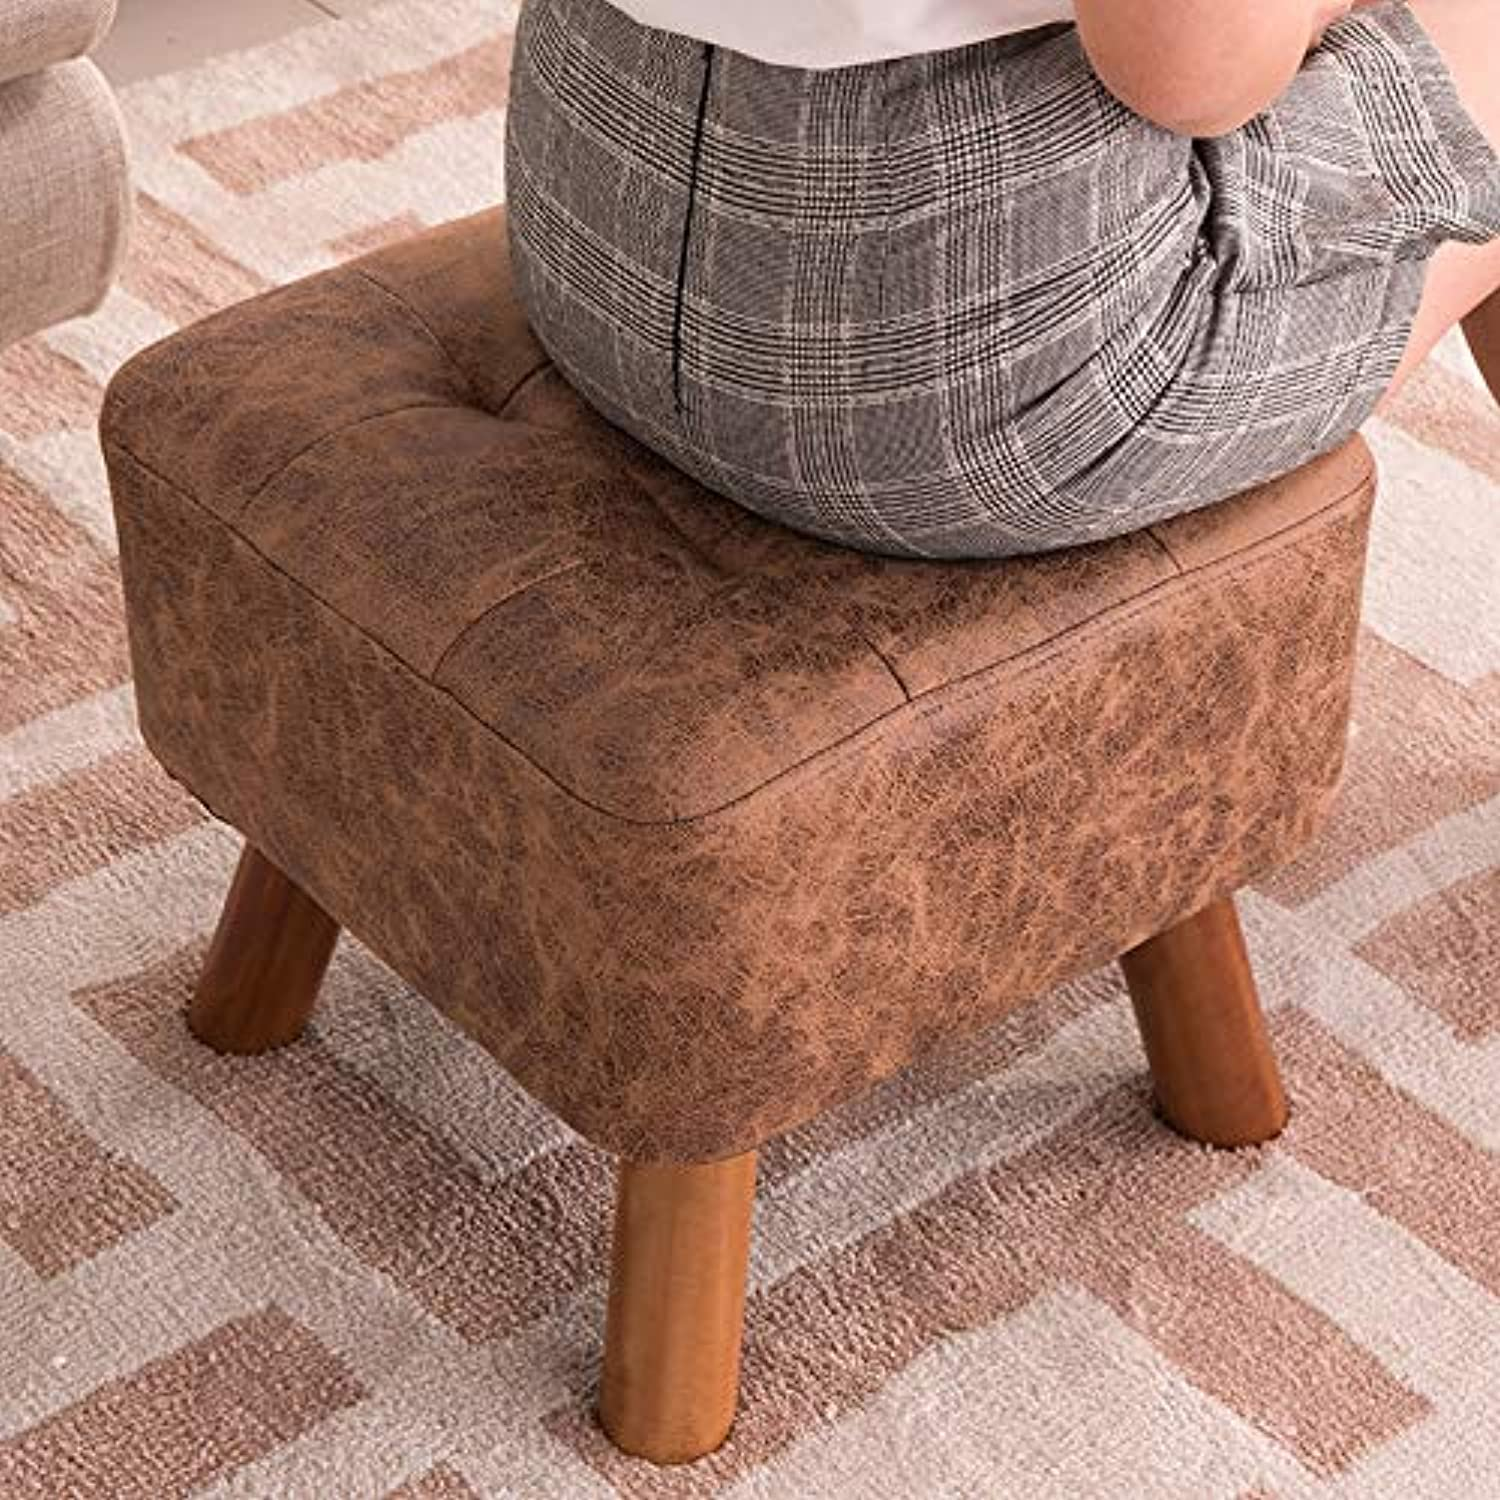 JEZBSY Change shoes Stool Solid Wood Stool Stool Fashion Creative Sofa Stool Coffee Table wear shoes Sitting pier Dressing Footstool shoes Bench JEZBSY